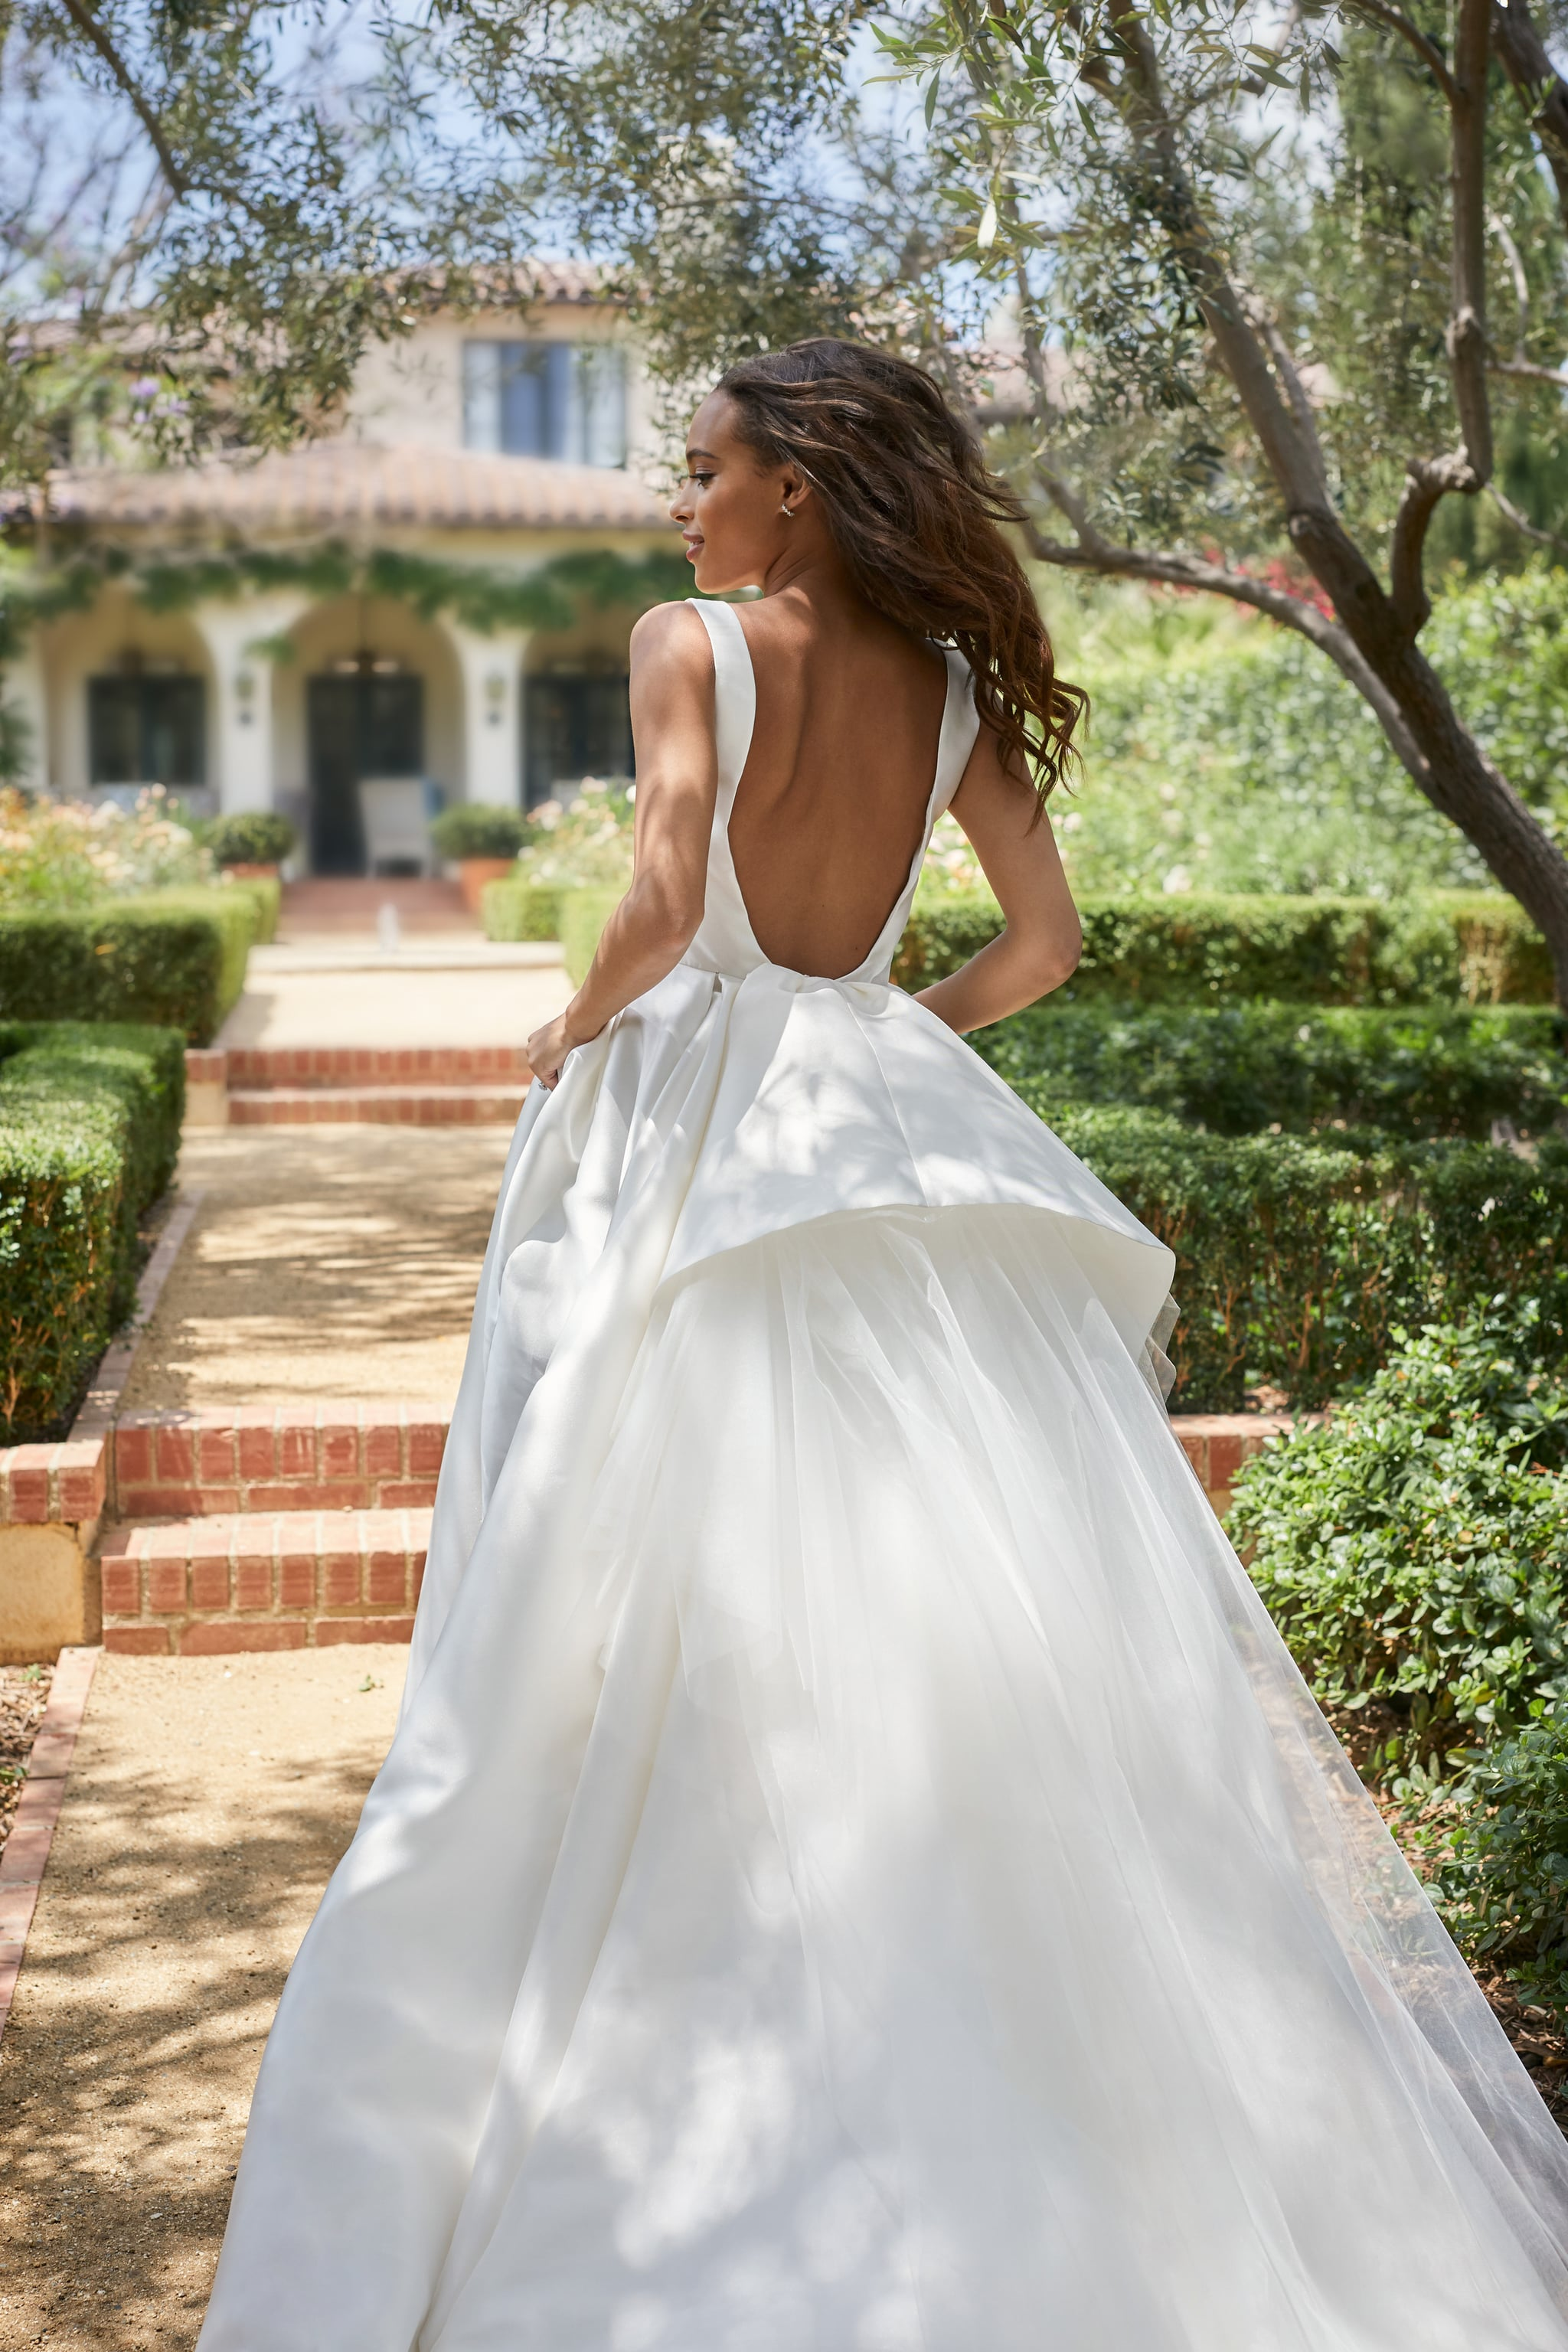 The 6 Biggest Wedding Dress Trends For 2021 Brides To Know Popsugar Fashion